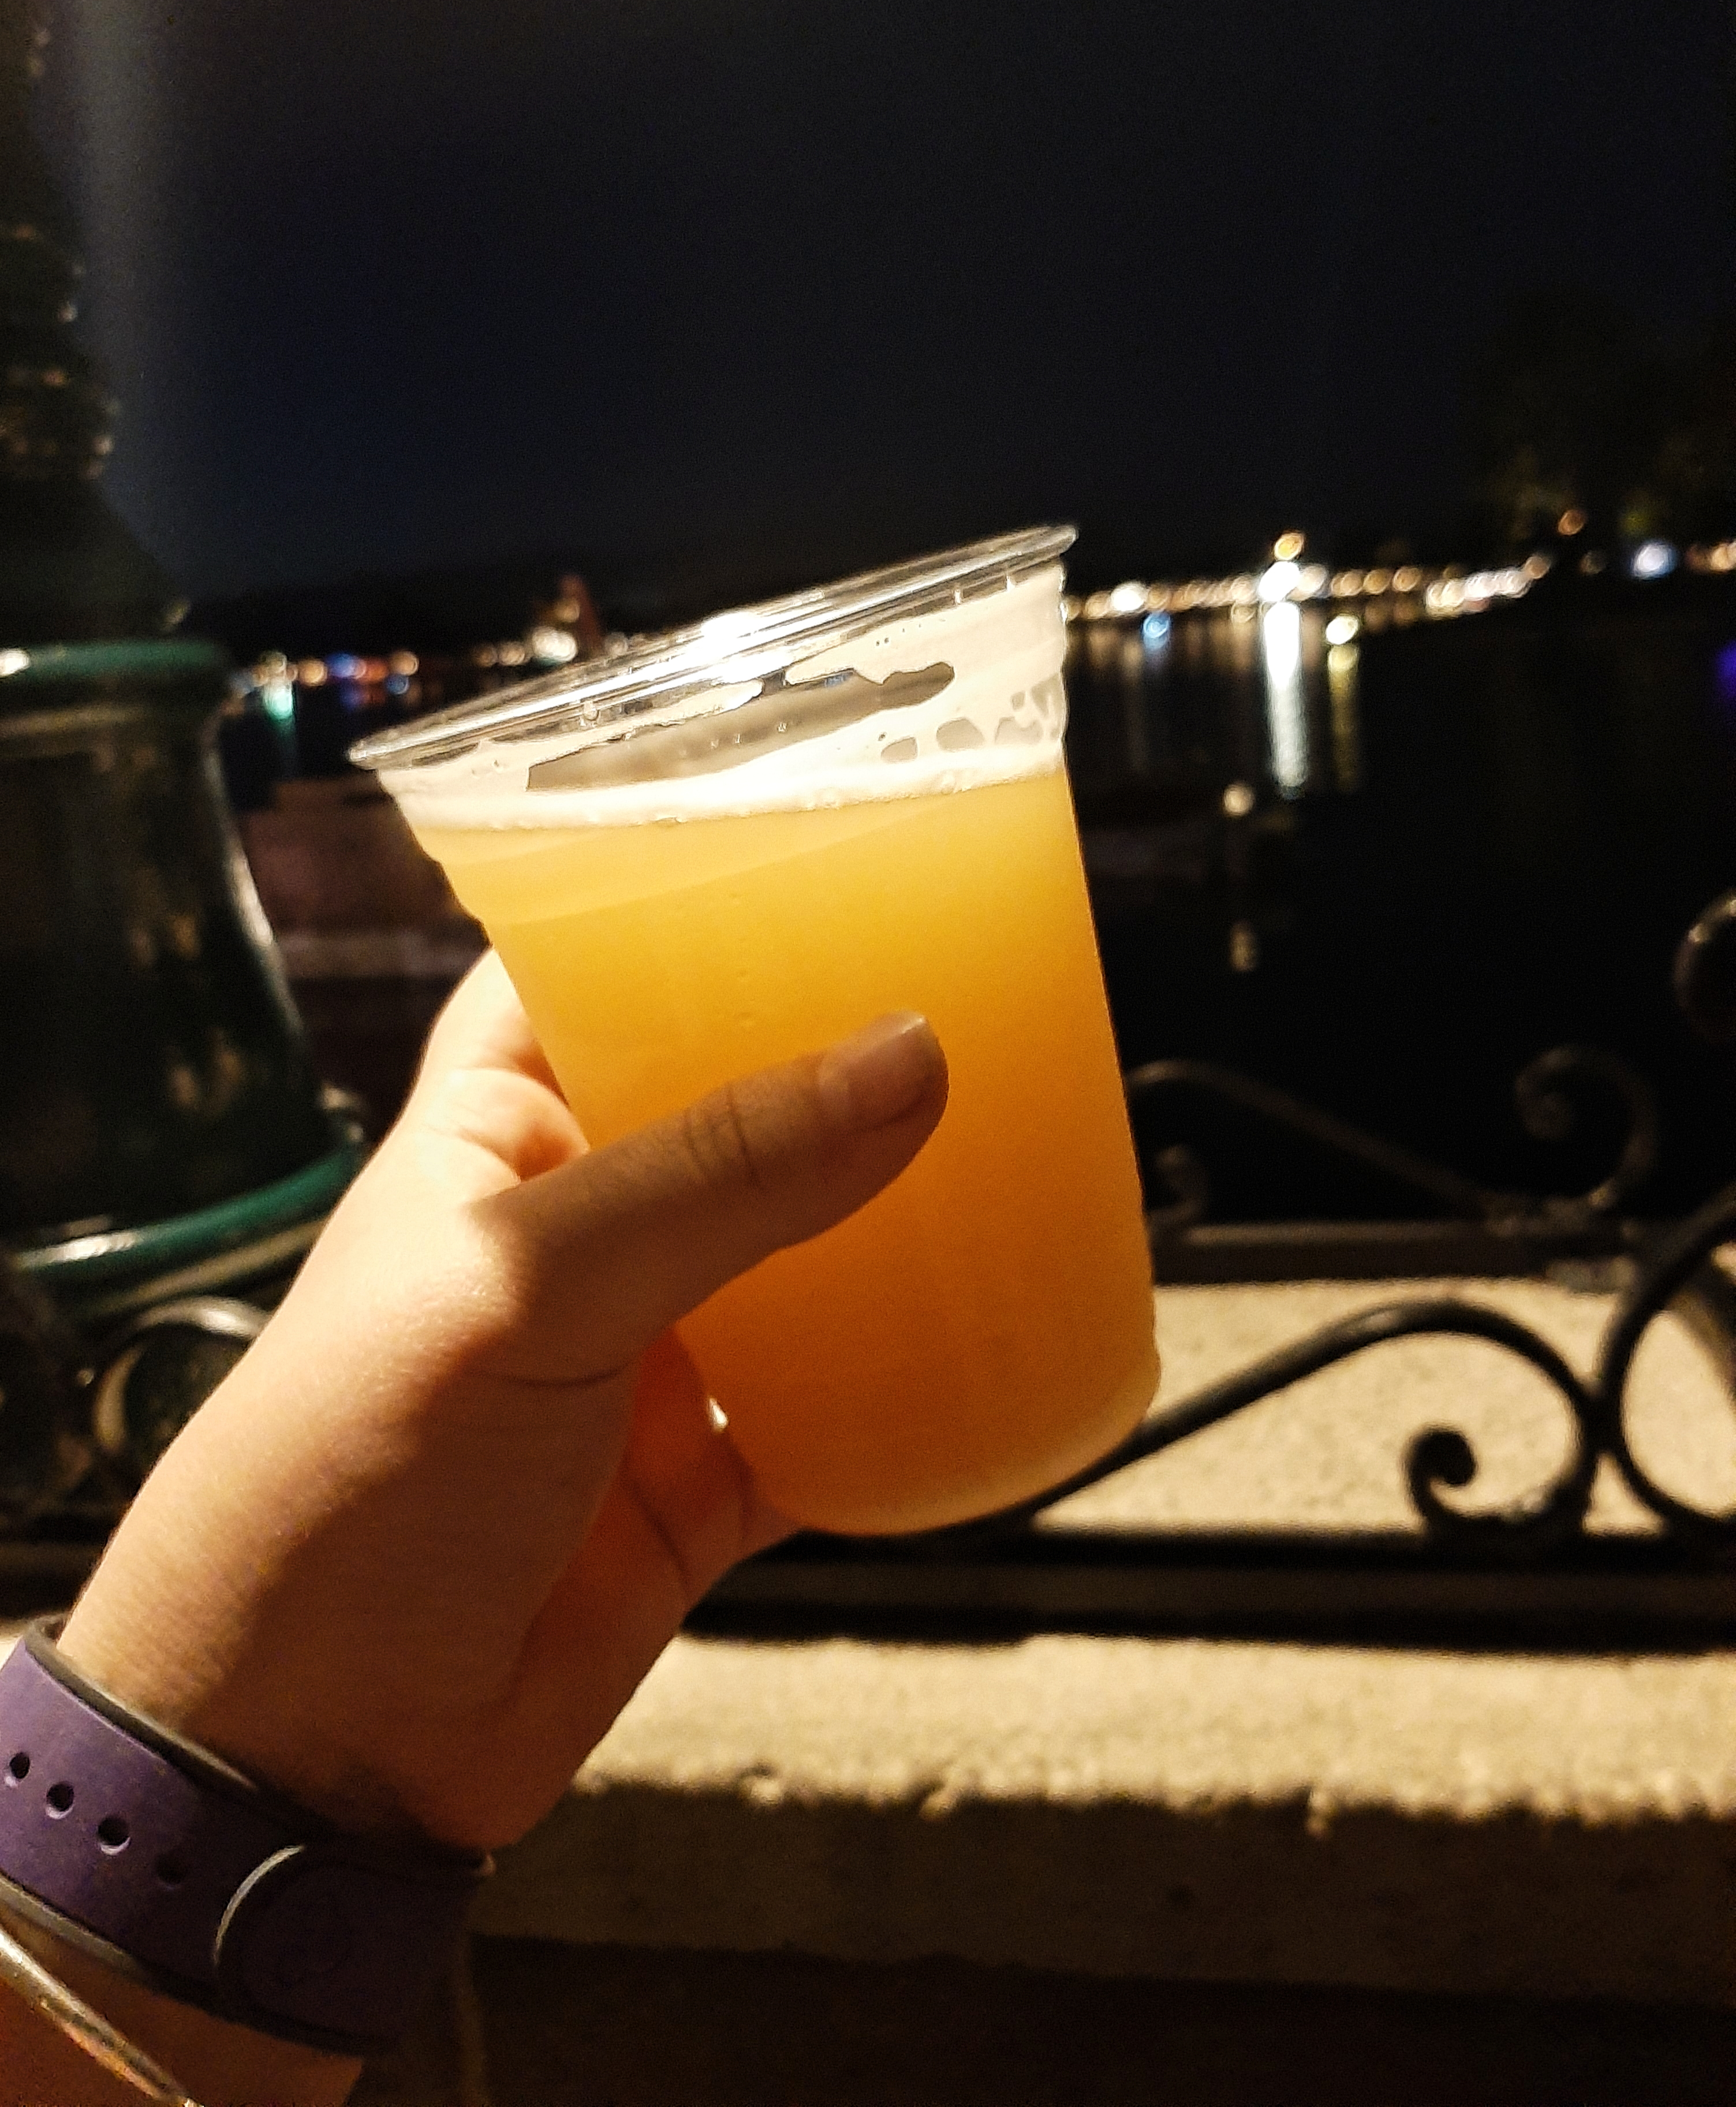 Hand holding a Mystery German Beer!